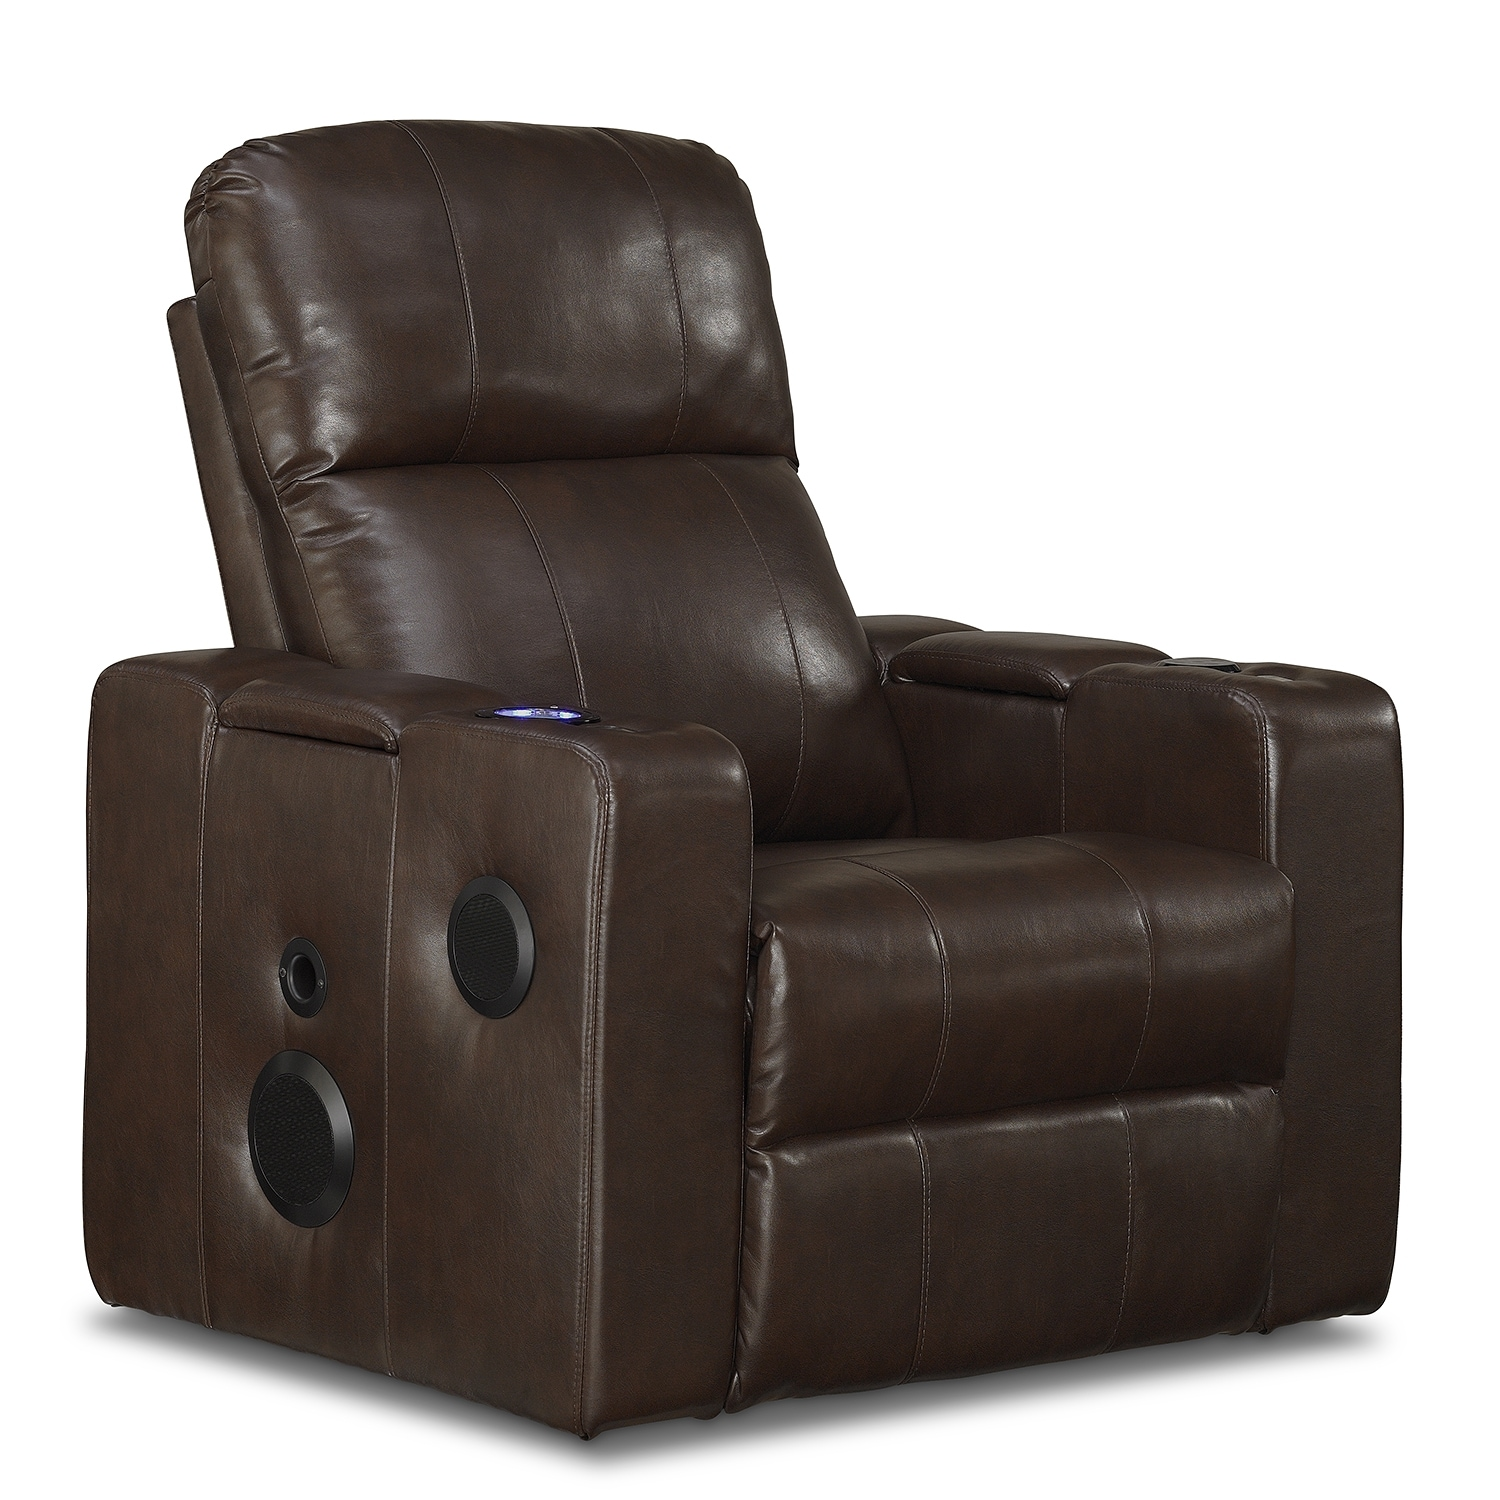 Living Room Furniture - Skylar Home Theater Recliner